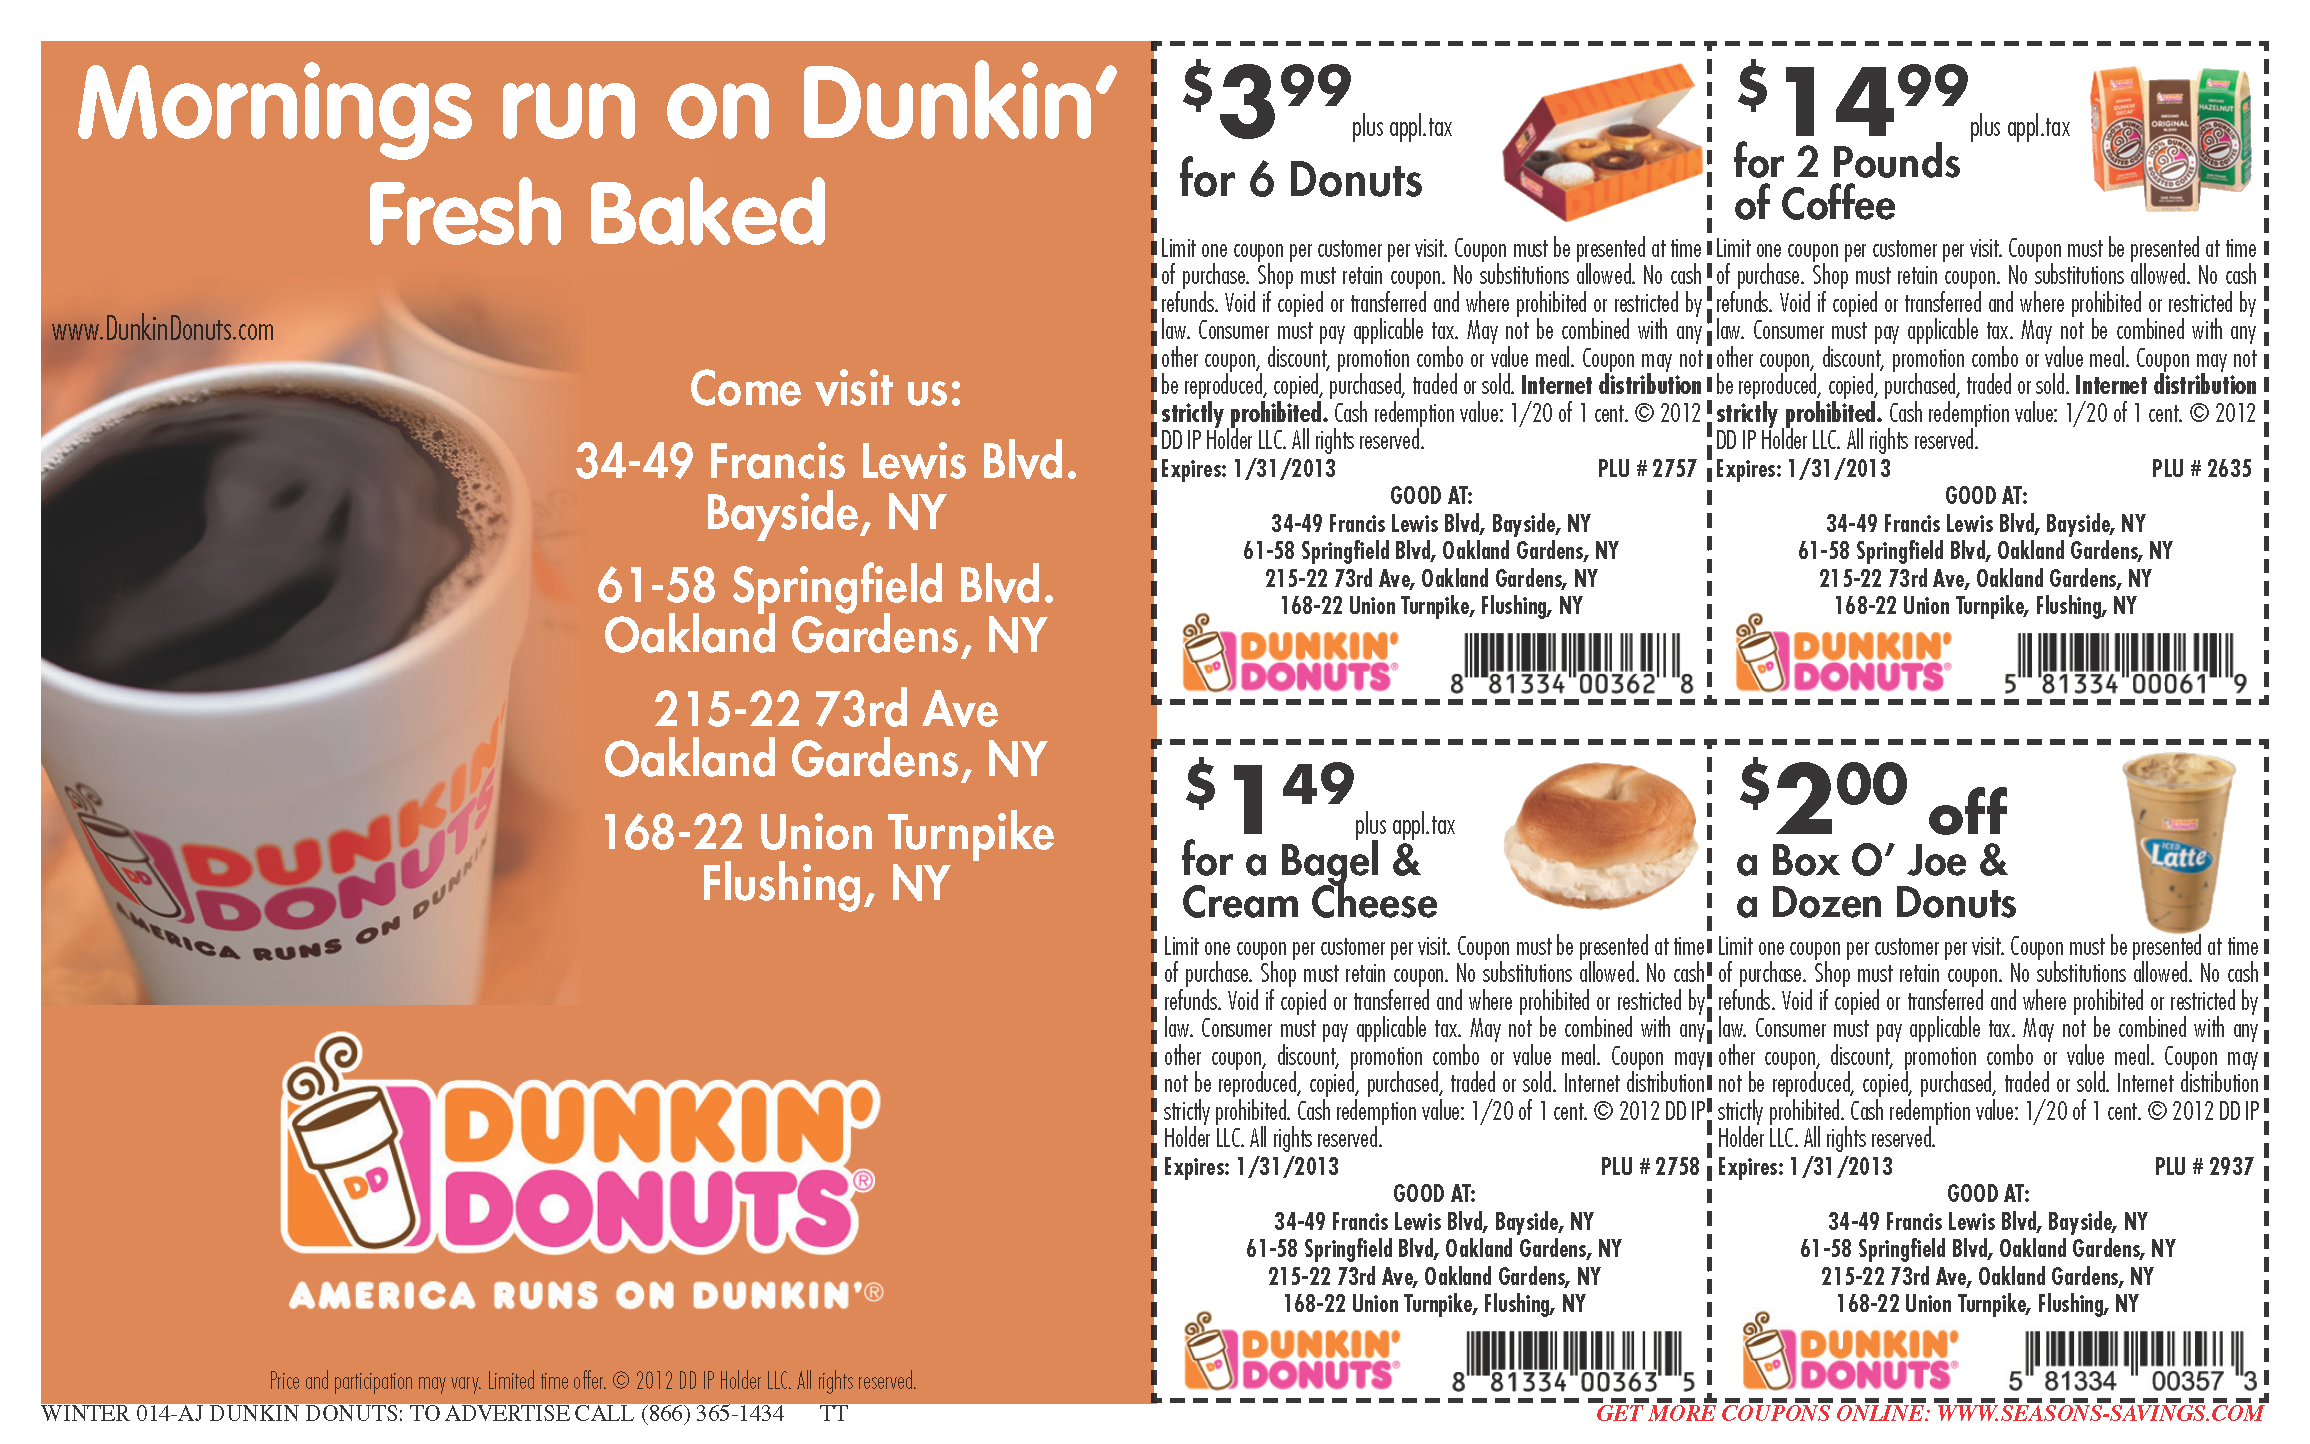 photograph about Printable Coffee Coupons identify Dunkin Donuts Espresso coupon codes april-may possibly (1) Printable